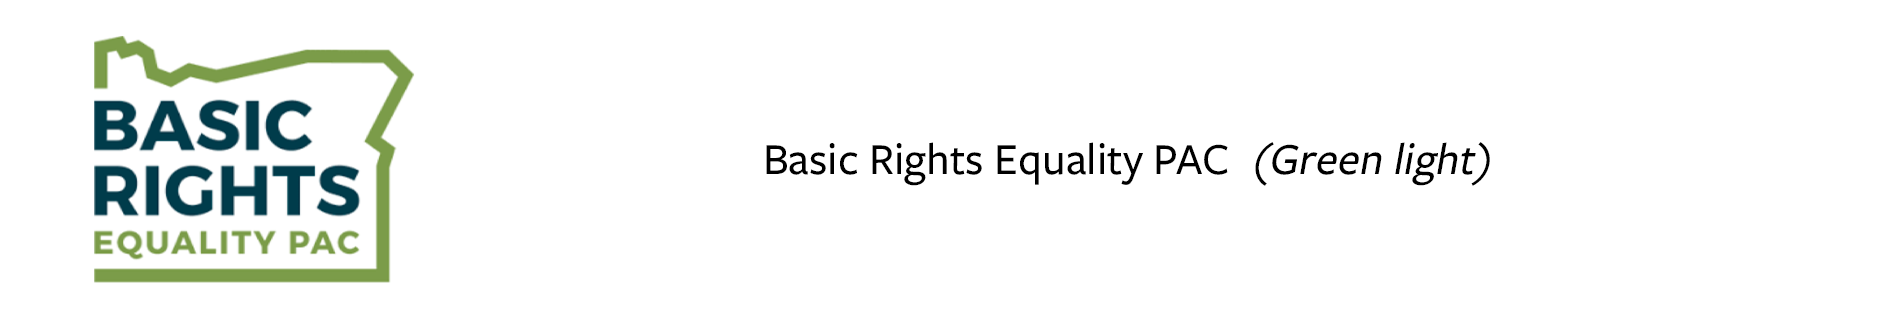 basic-rights.png